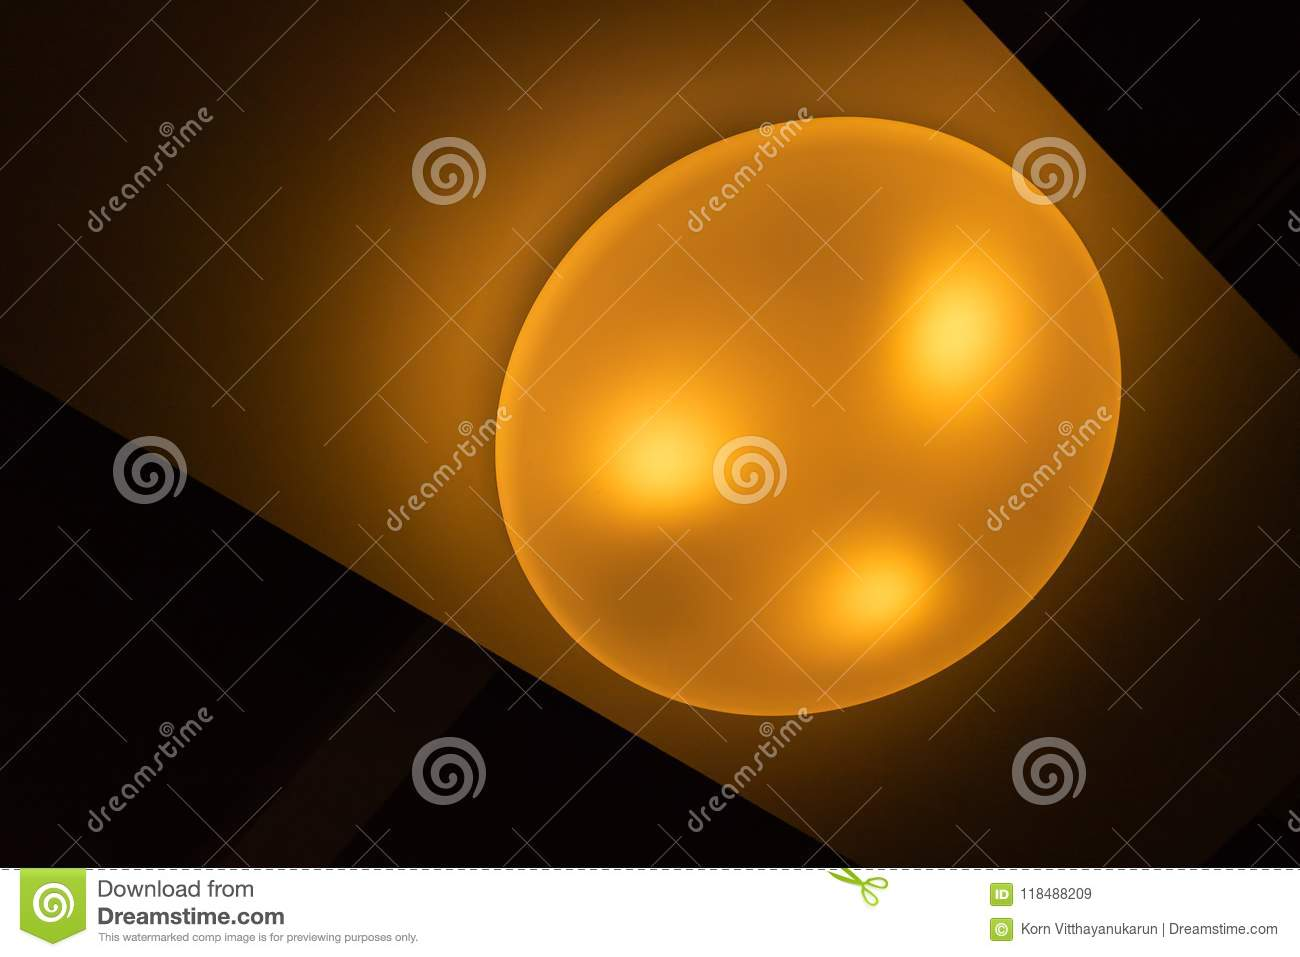 Led ceiling lamp light stock image  Image of night, yellow